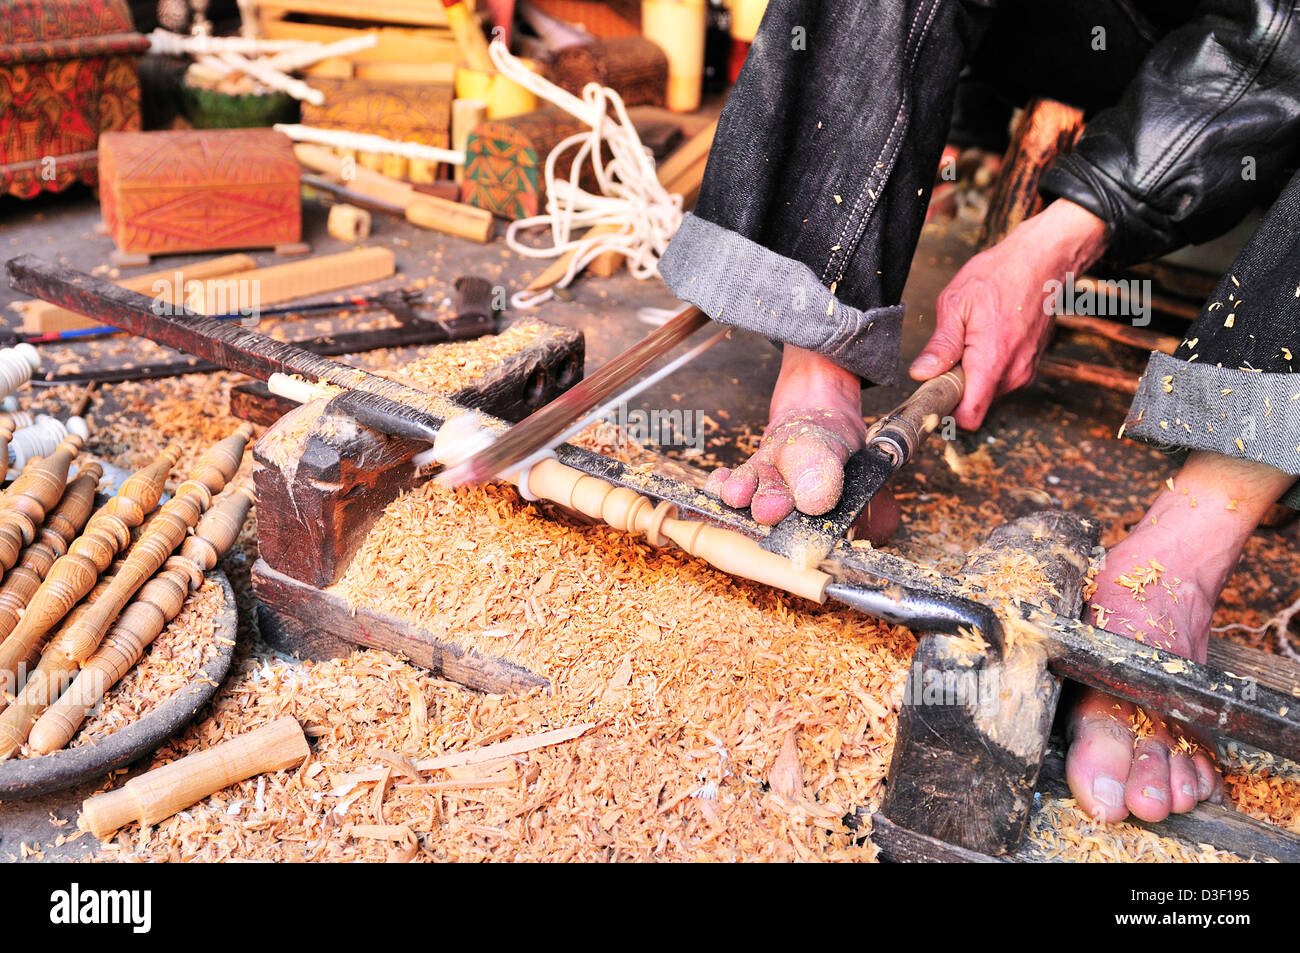 Man in a Medina  souk ,Marrakesh,  uses his feet  to operate his lathe to make decorative spindles for bobins - Stock Image